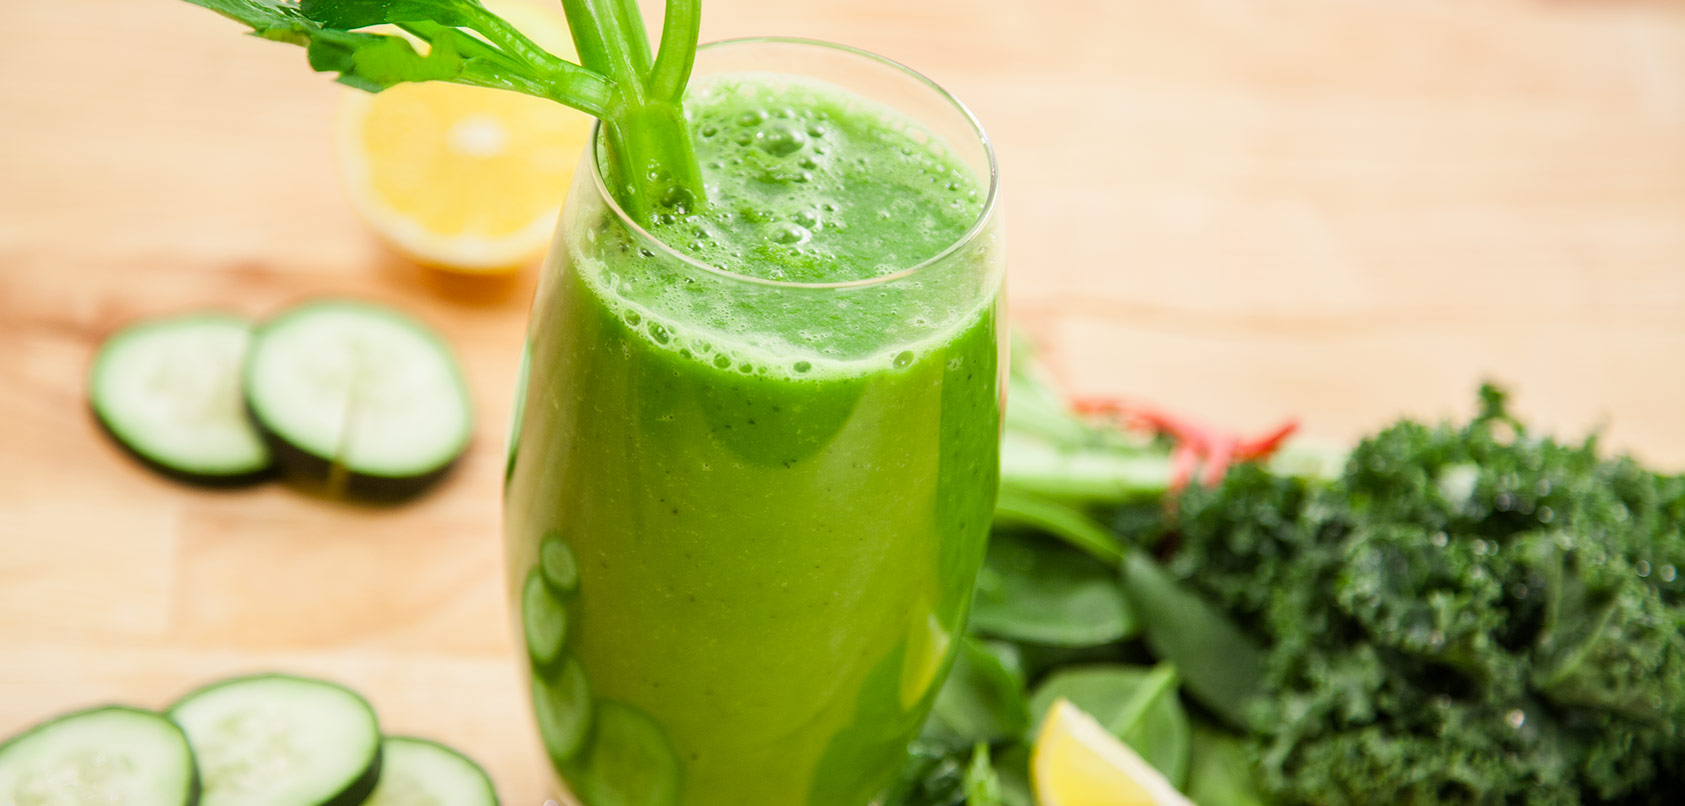 The 40 Day Green Mono Diet